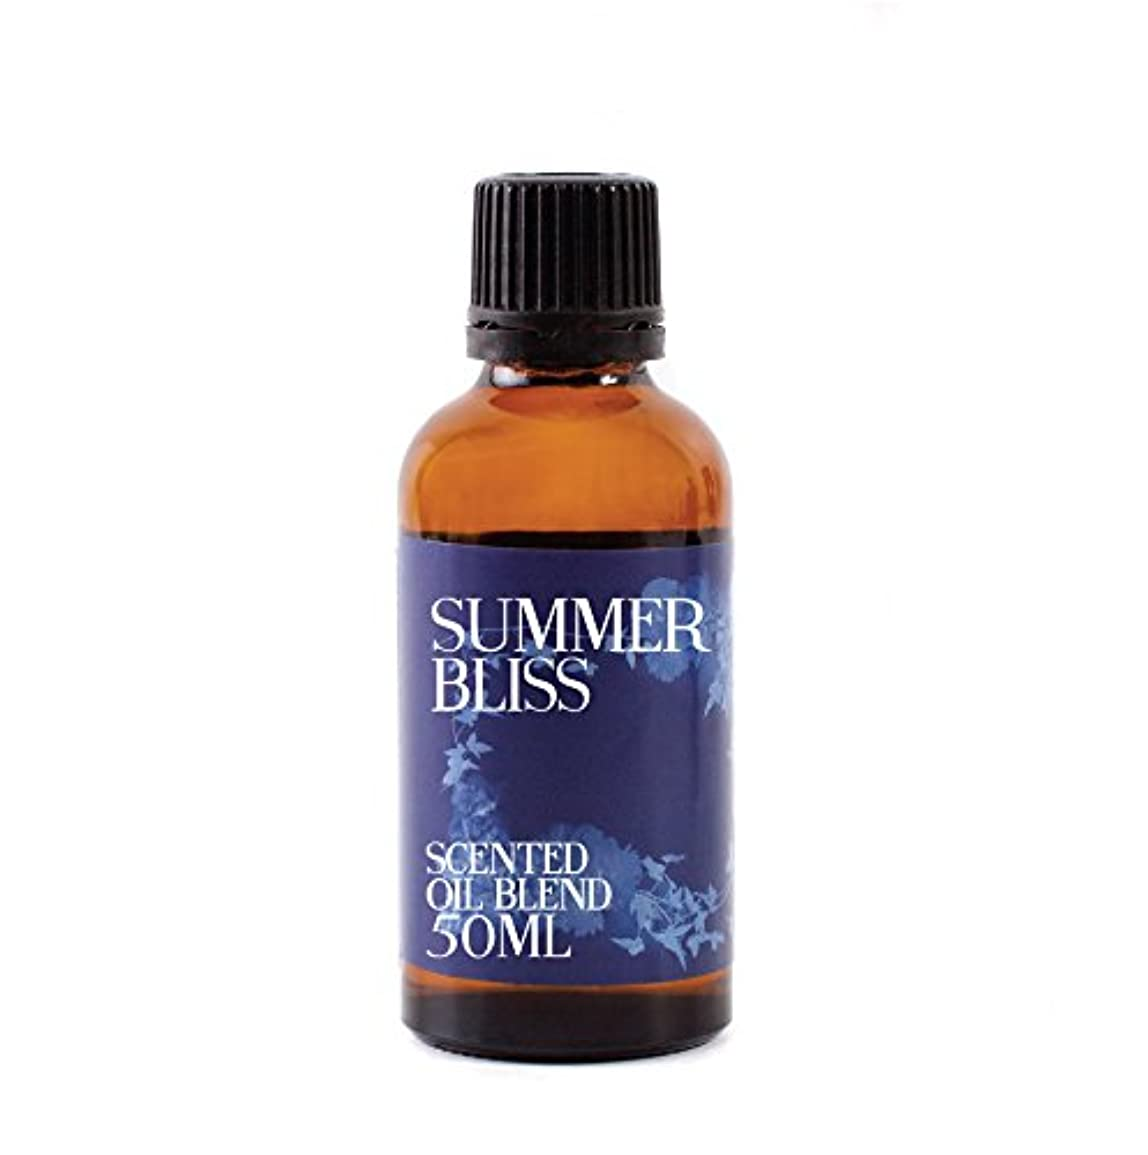 Mystic Moments | Summer Bliss - Scented Oil Blend - 50ml